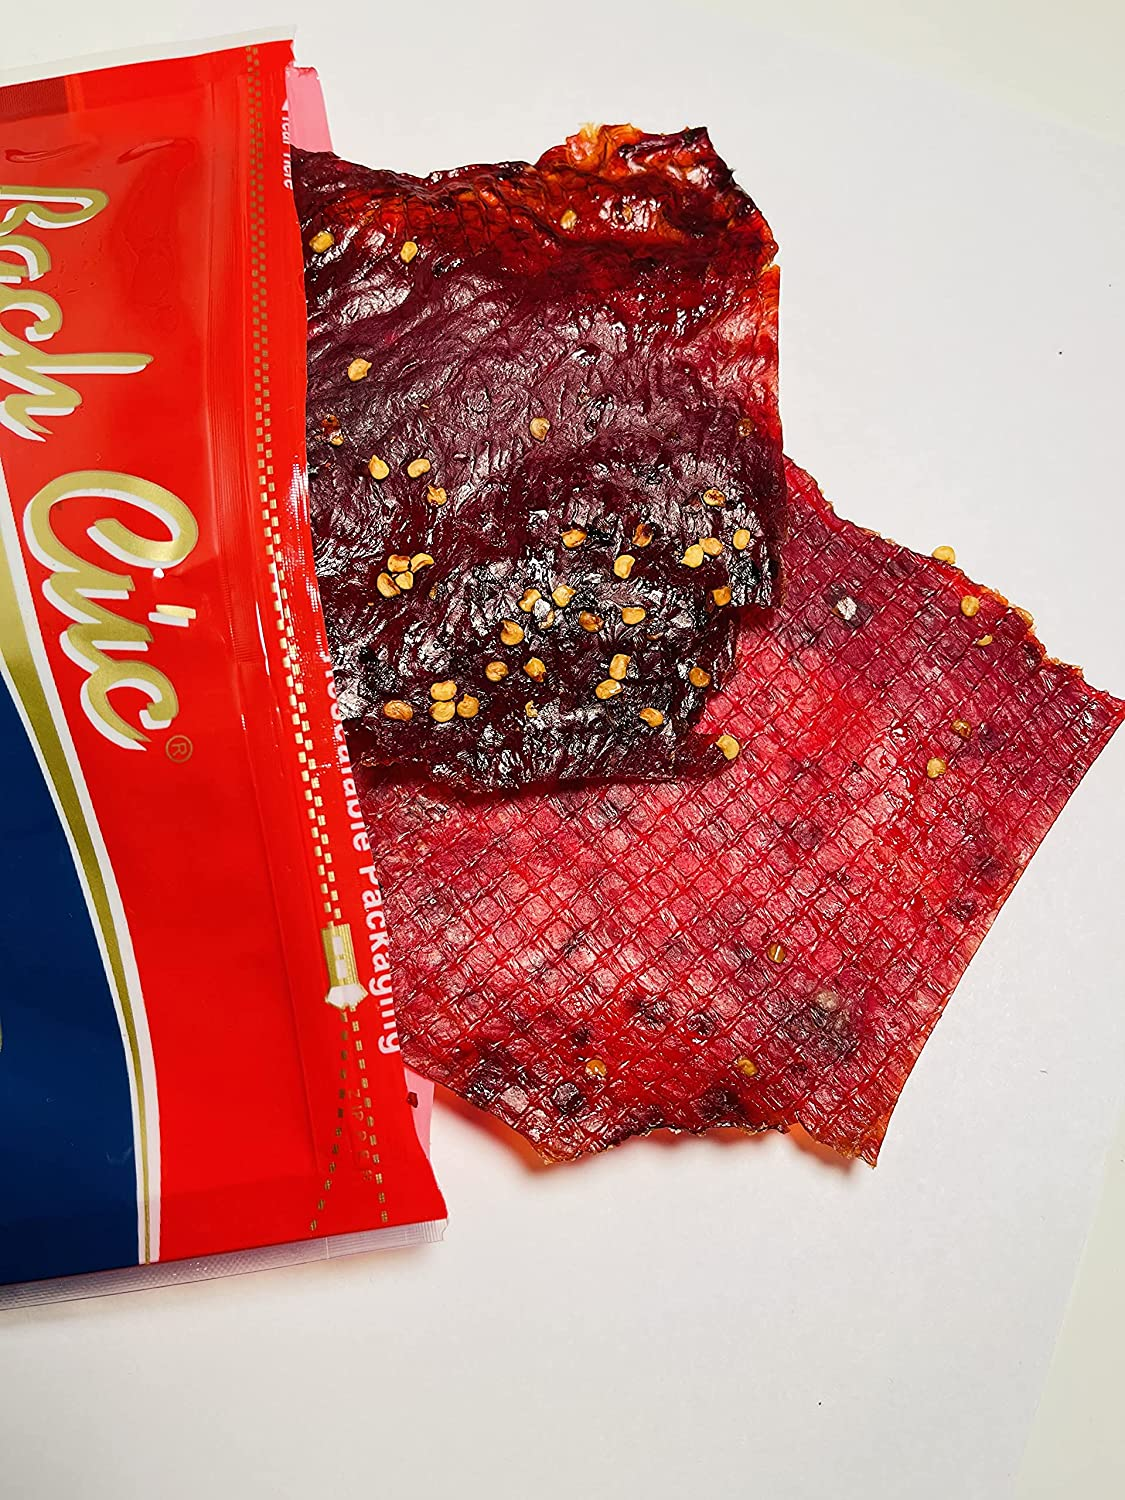 Bach cuc beef jerky Sale price BBQ flavor Beef from Solid Very popular made of Strips